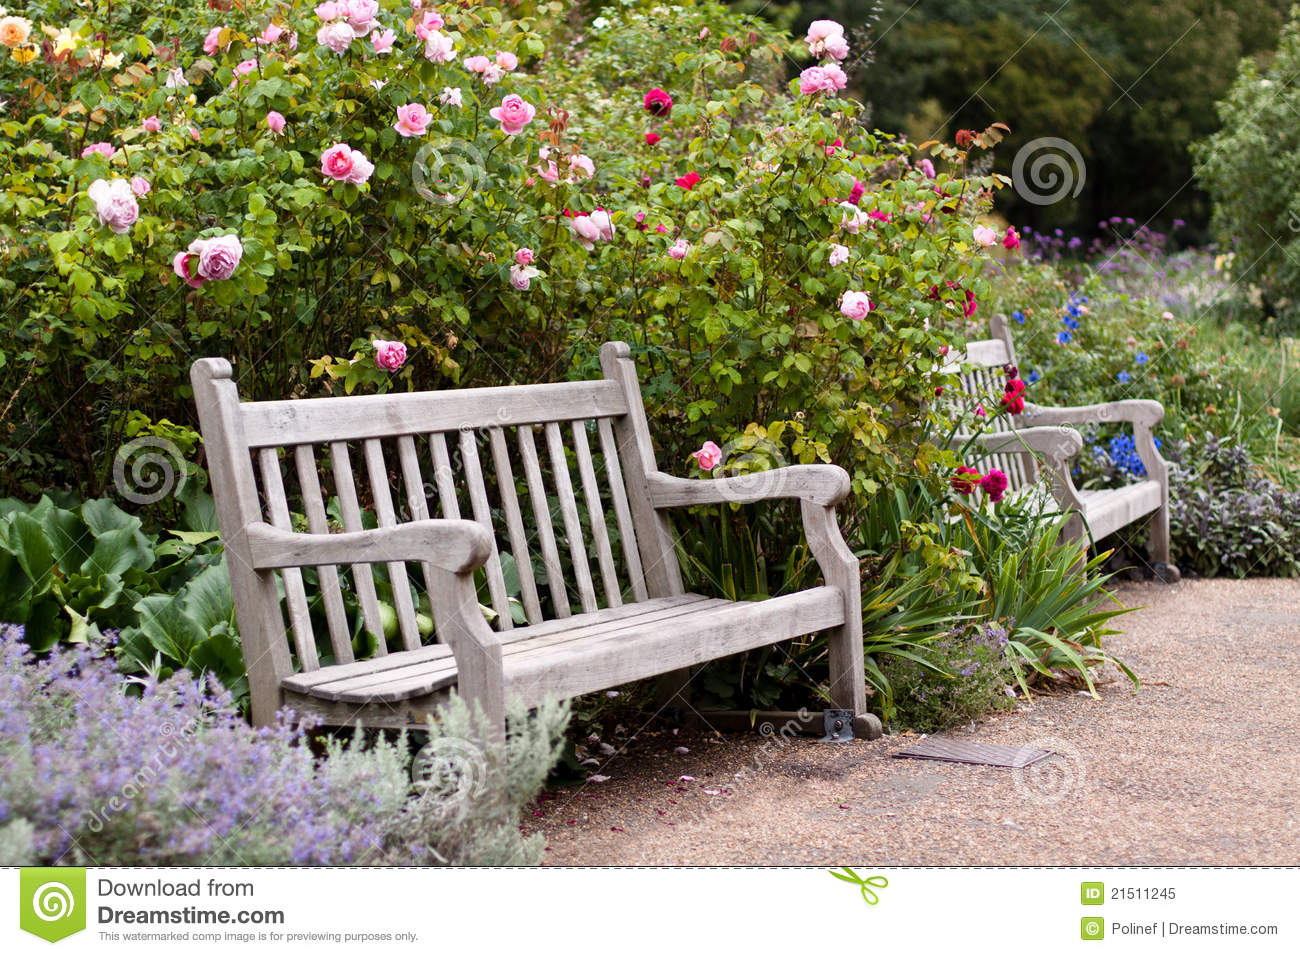 Rose garden in the park with wooden bench. Hyde Park.